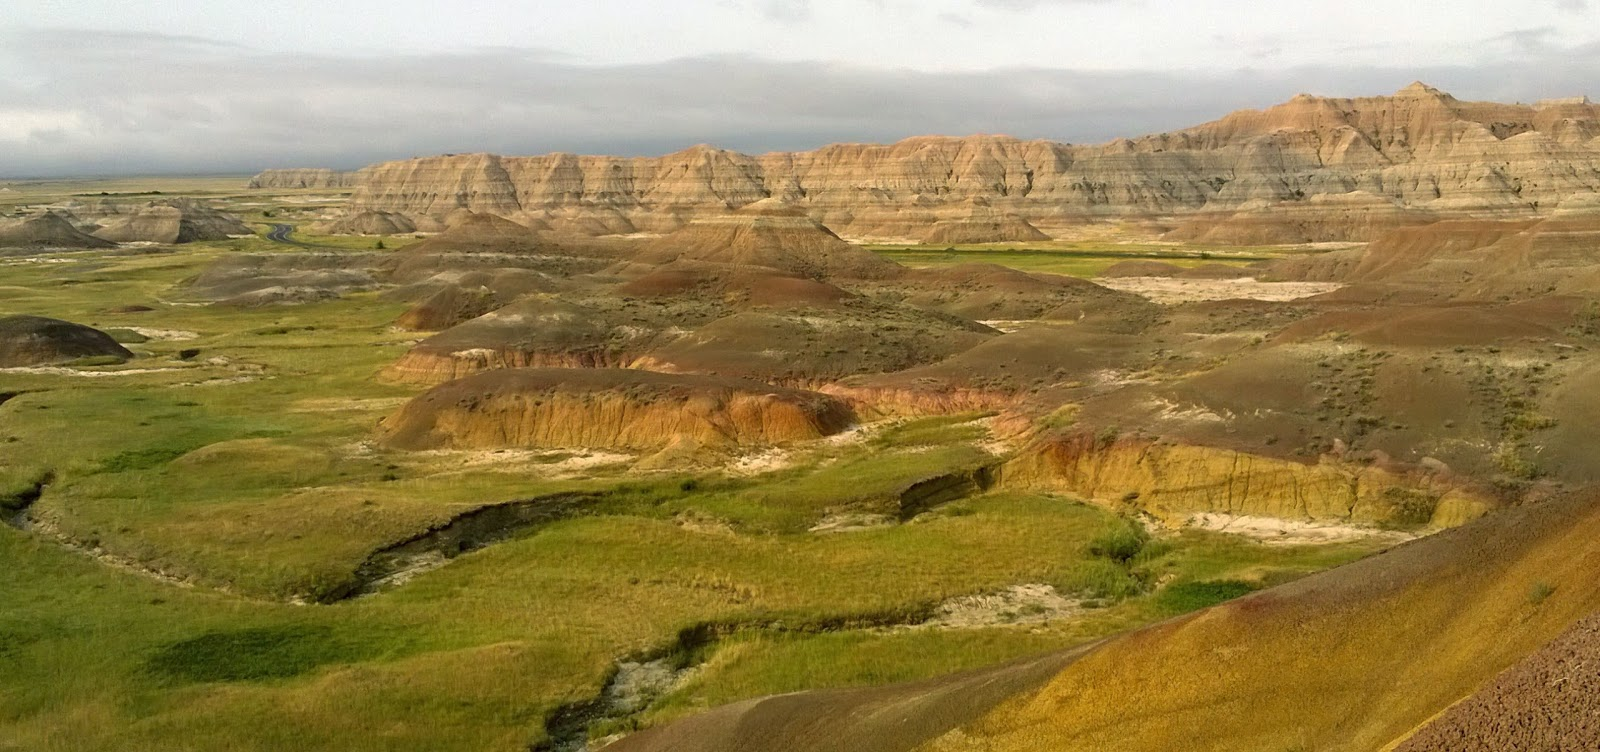 yellow mounds overlook, badlands